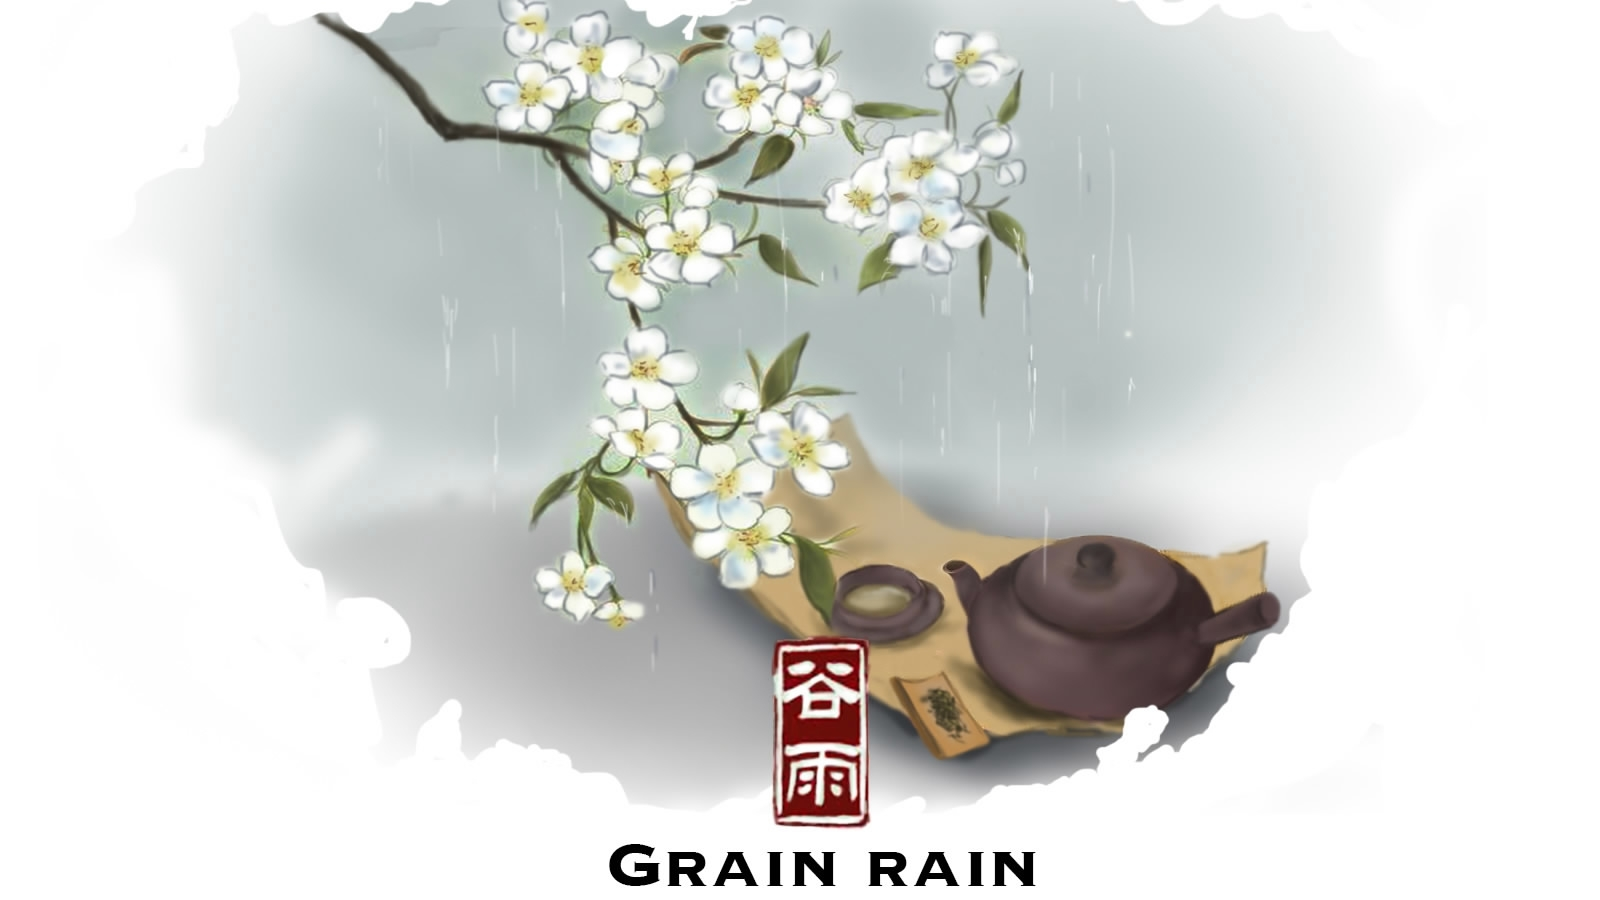 Grain Rain: A final spring party with the peony, tea and rain(1/7)